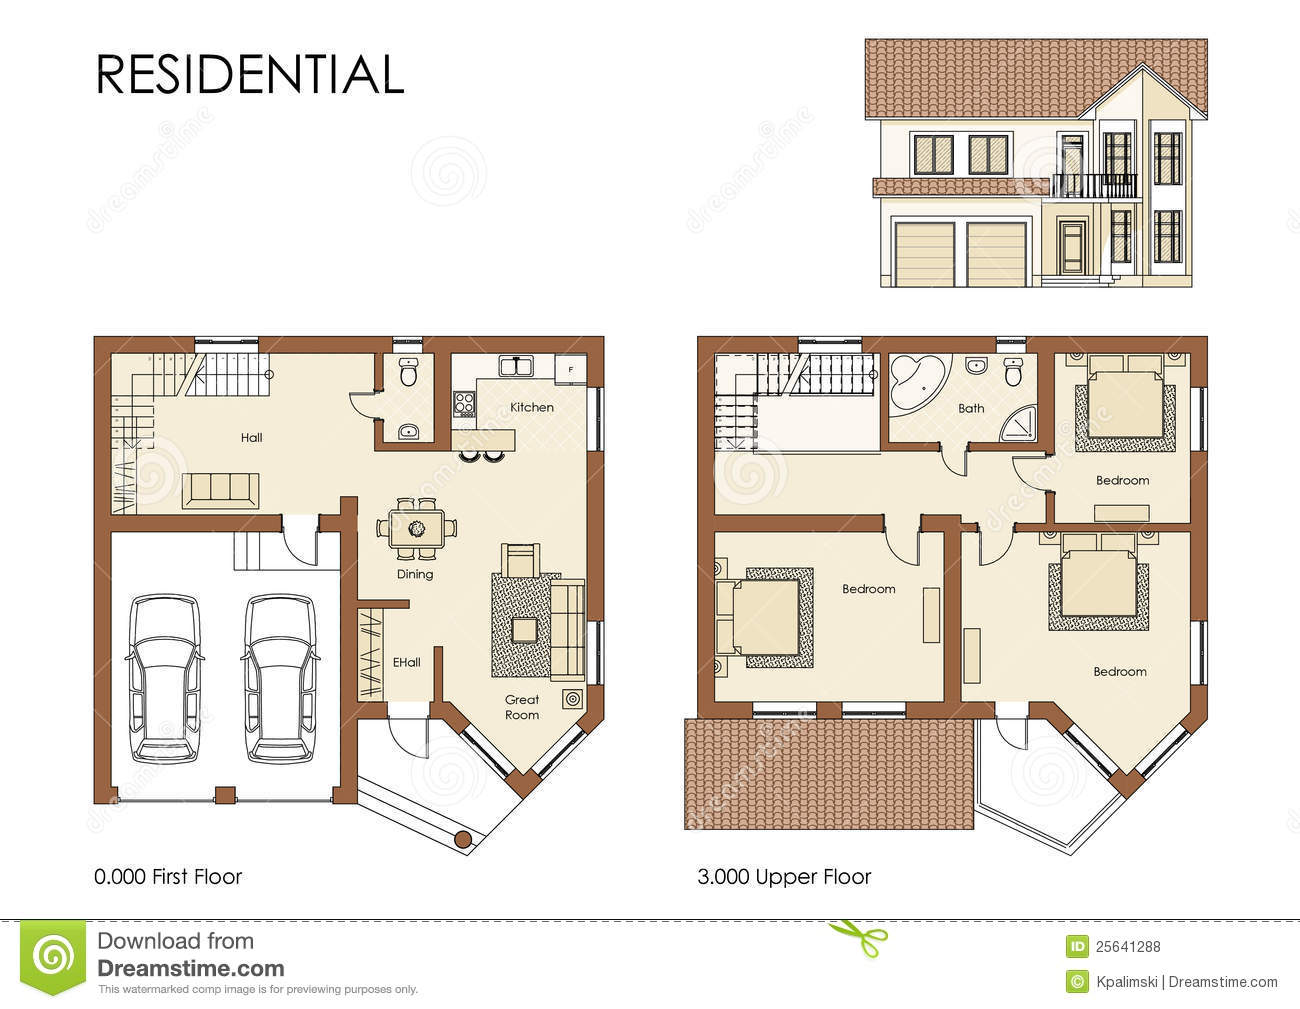 Residential house plan royalty free stock photos image for Residential blueprints